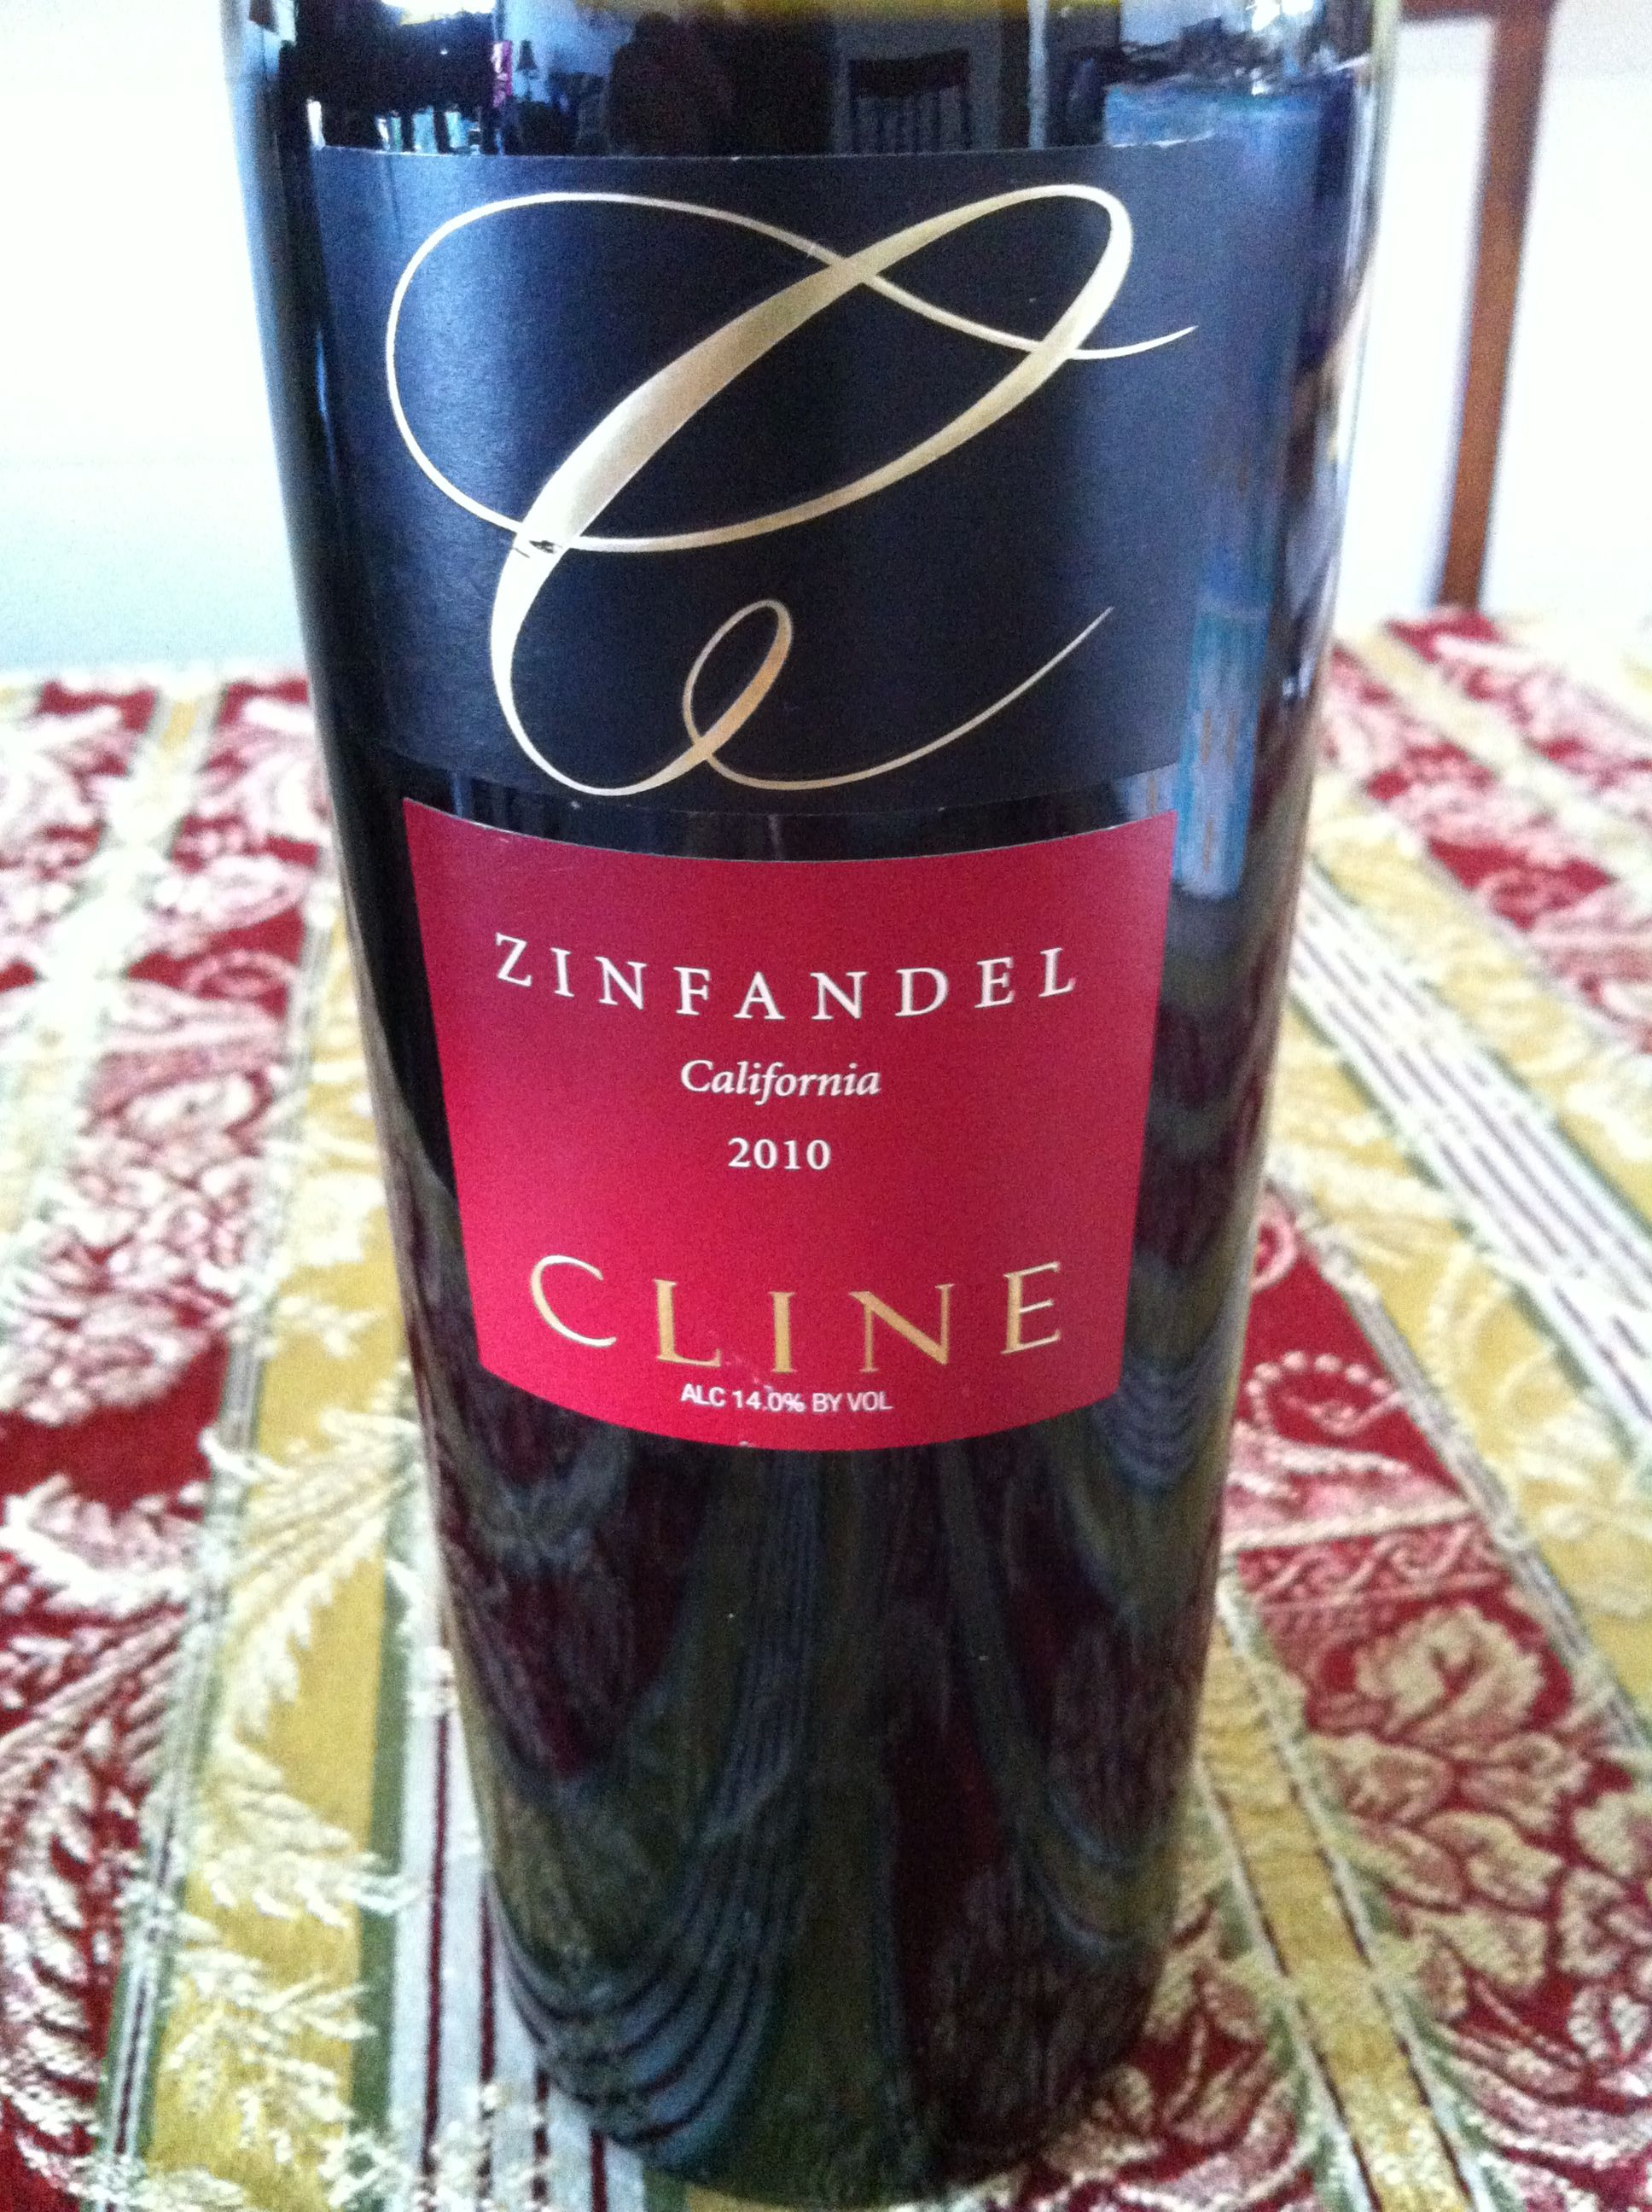 Cline Wines Are Wonderful This One Is Good With Speghetti And A Red Sauce Or Anytime In My Opinion Wine Down Wine Time Wines